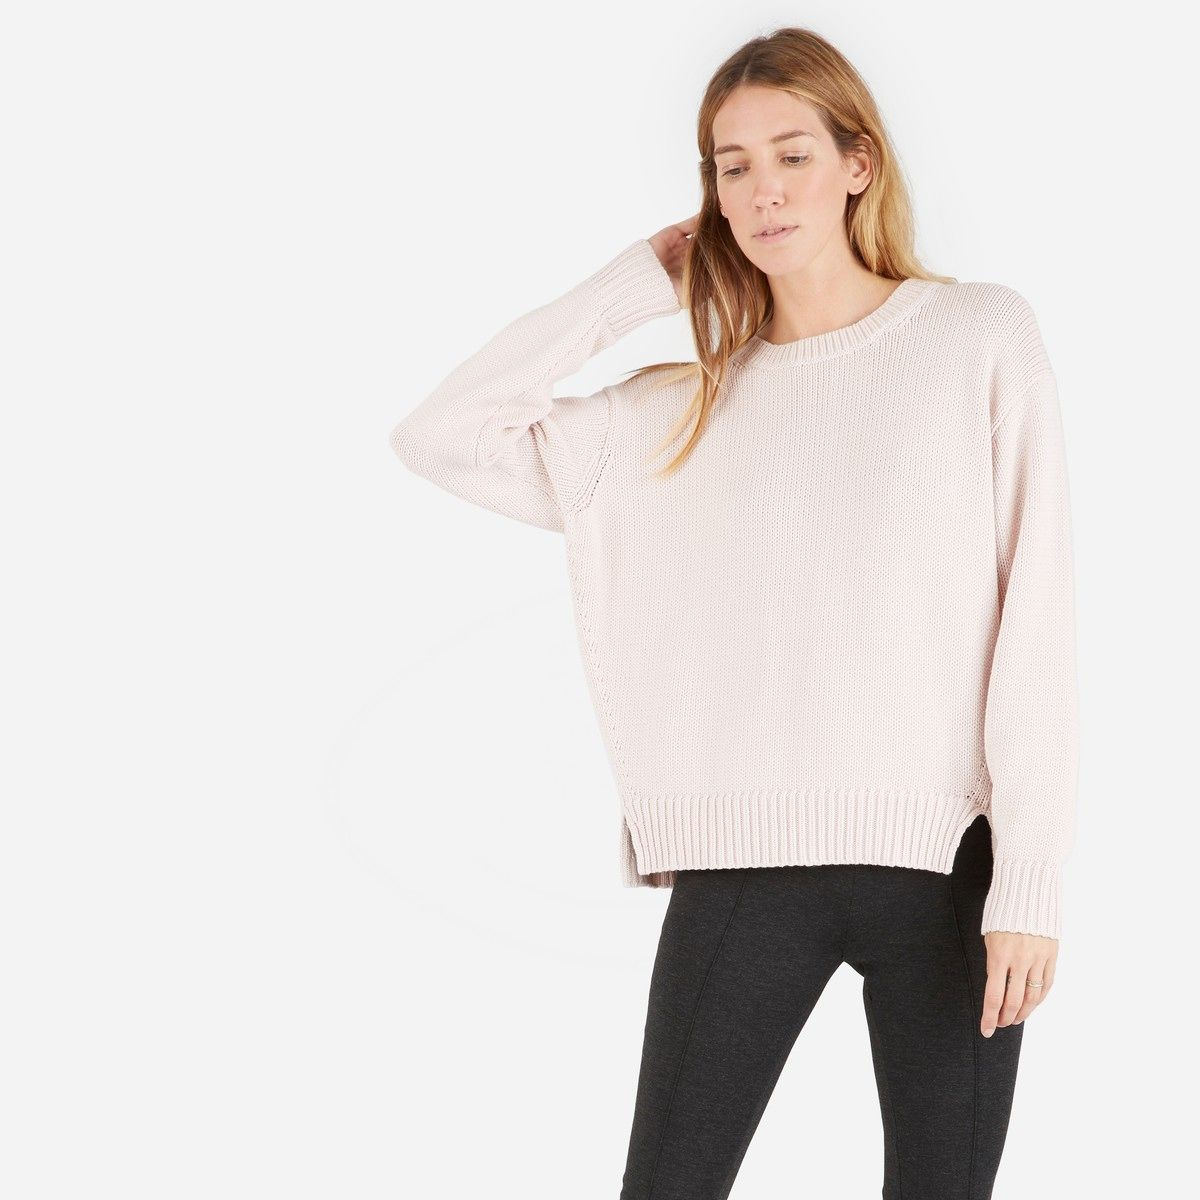 The Chunky Knit Cotton Crew – $85 | Products, Sweaters and We